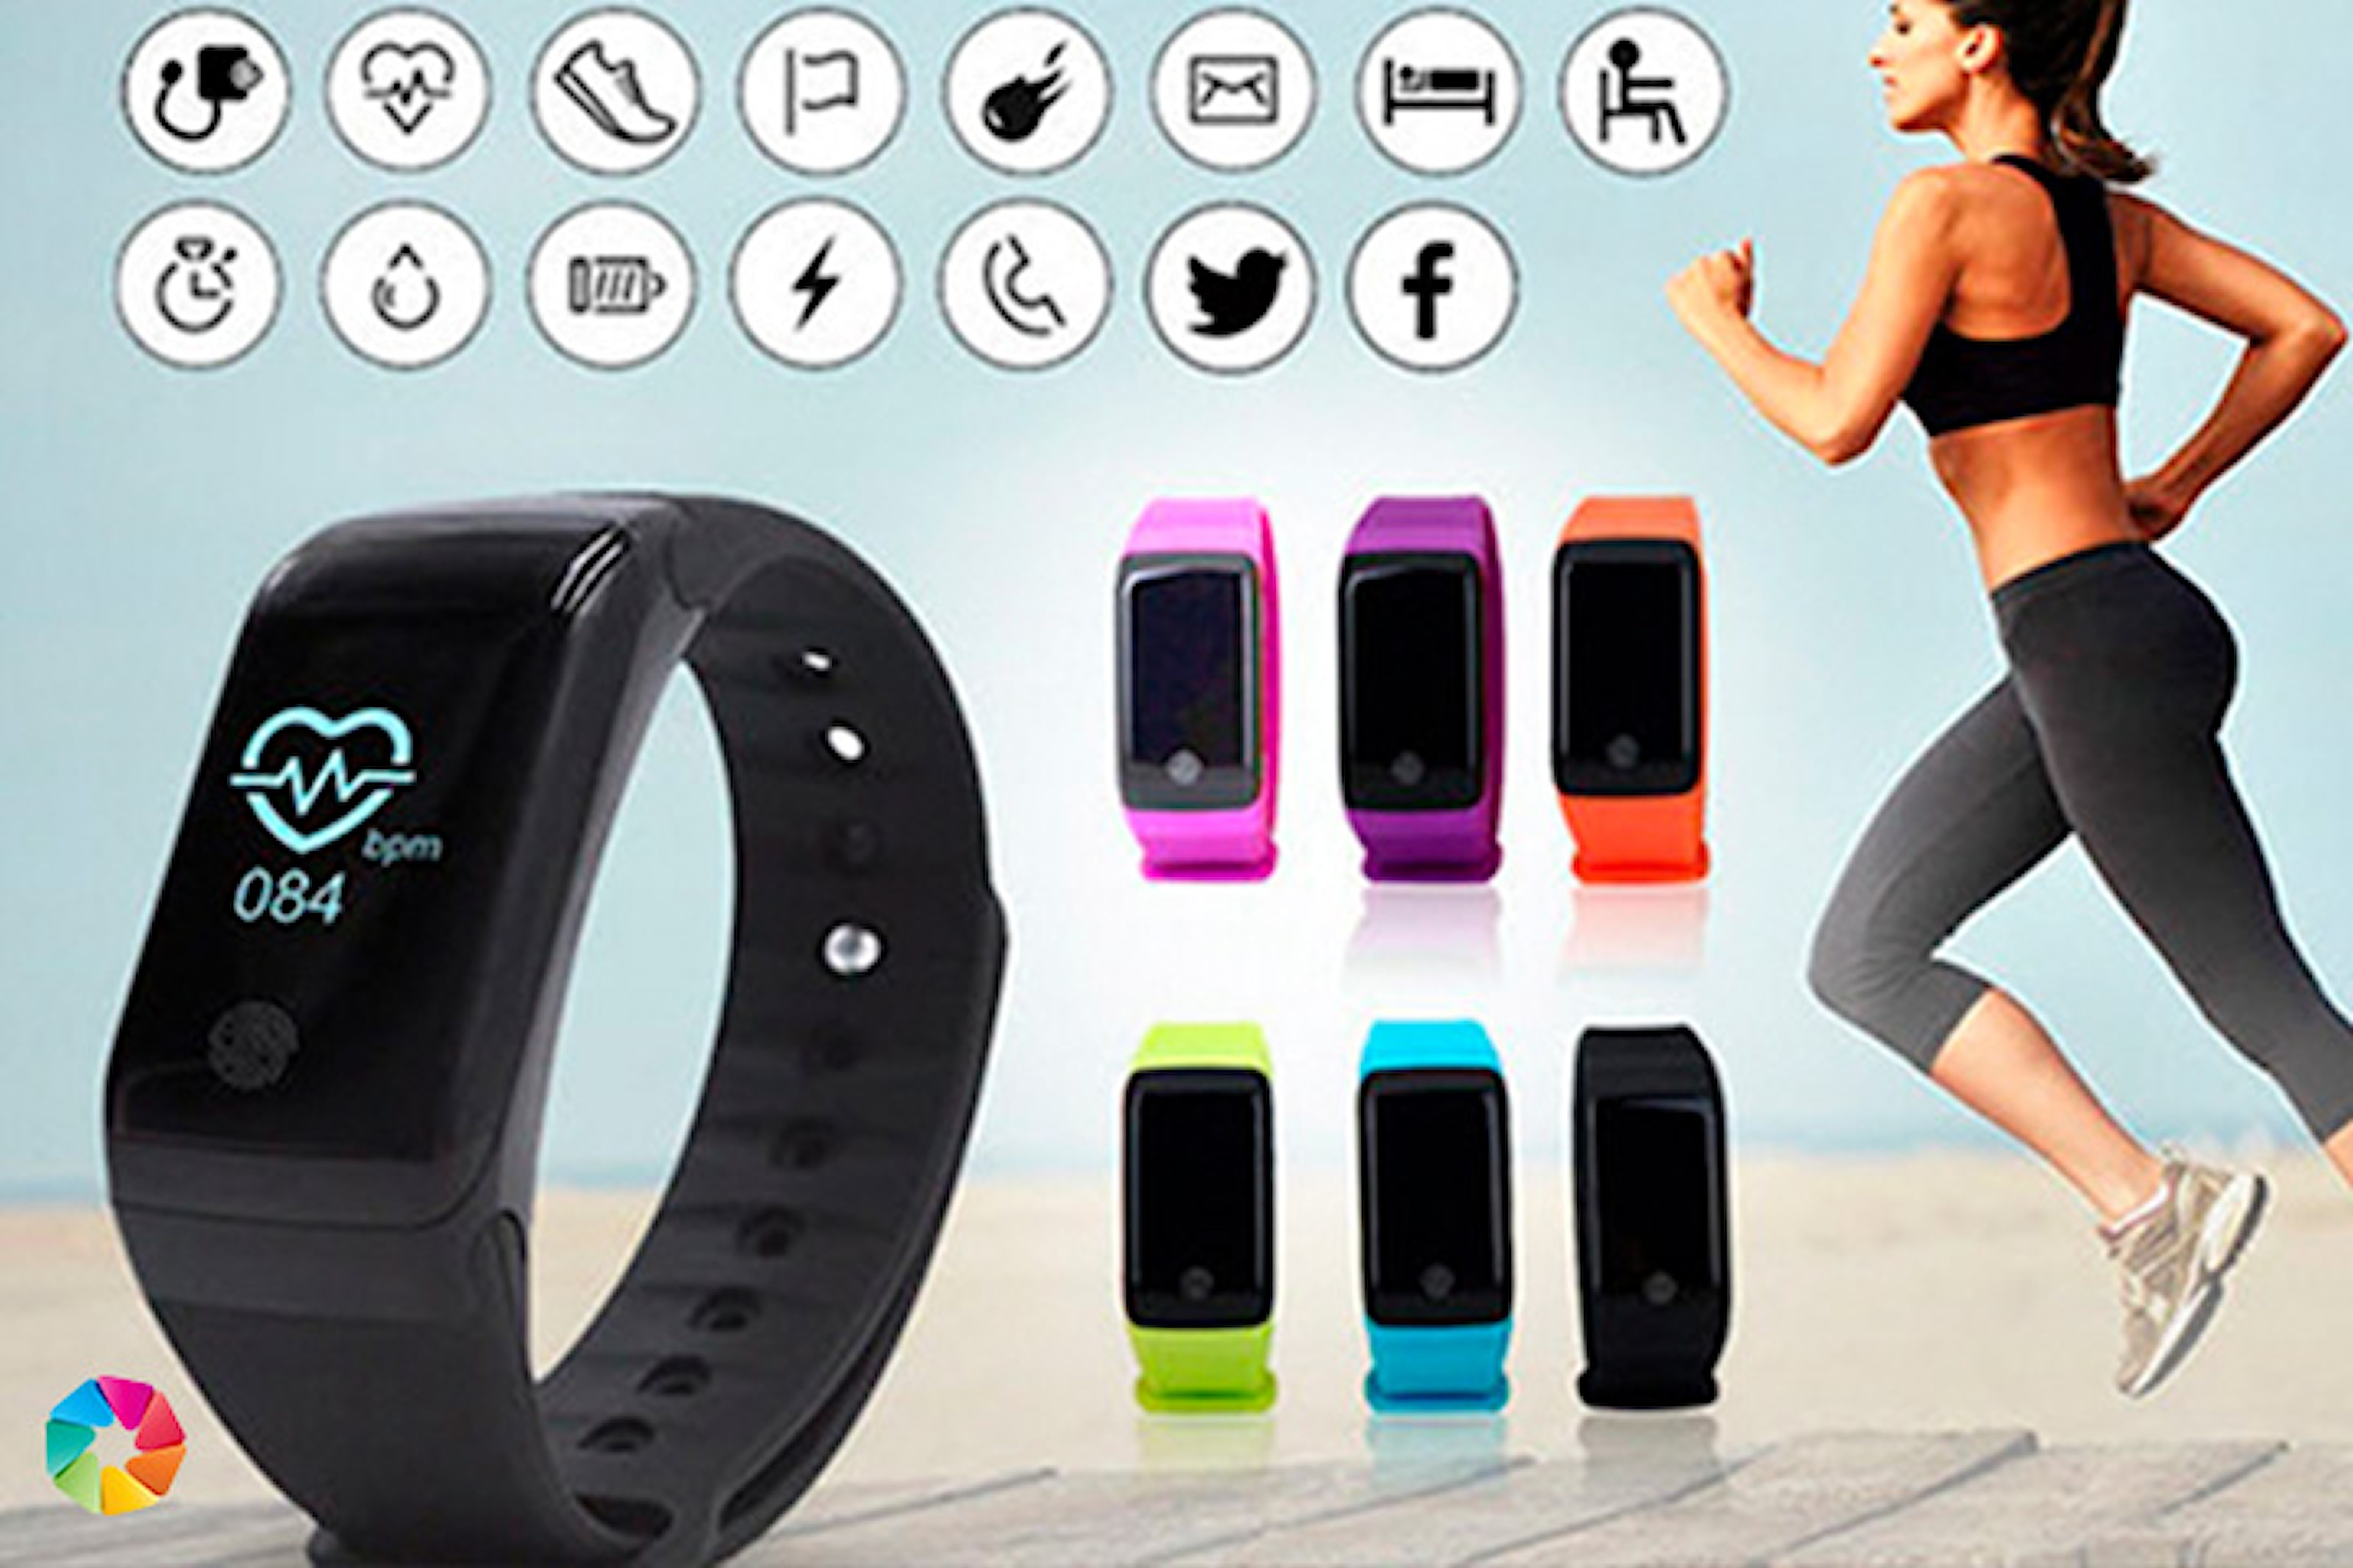 18-in-1 fitness tracker